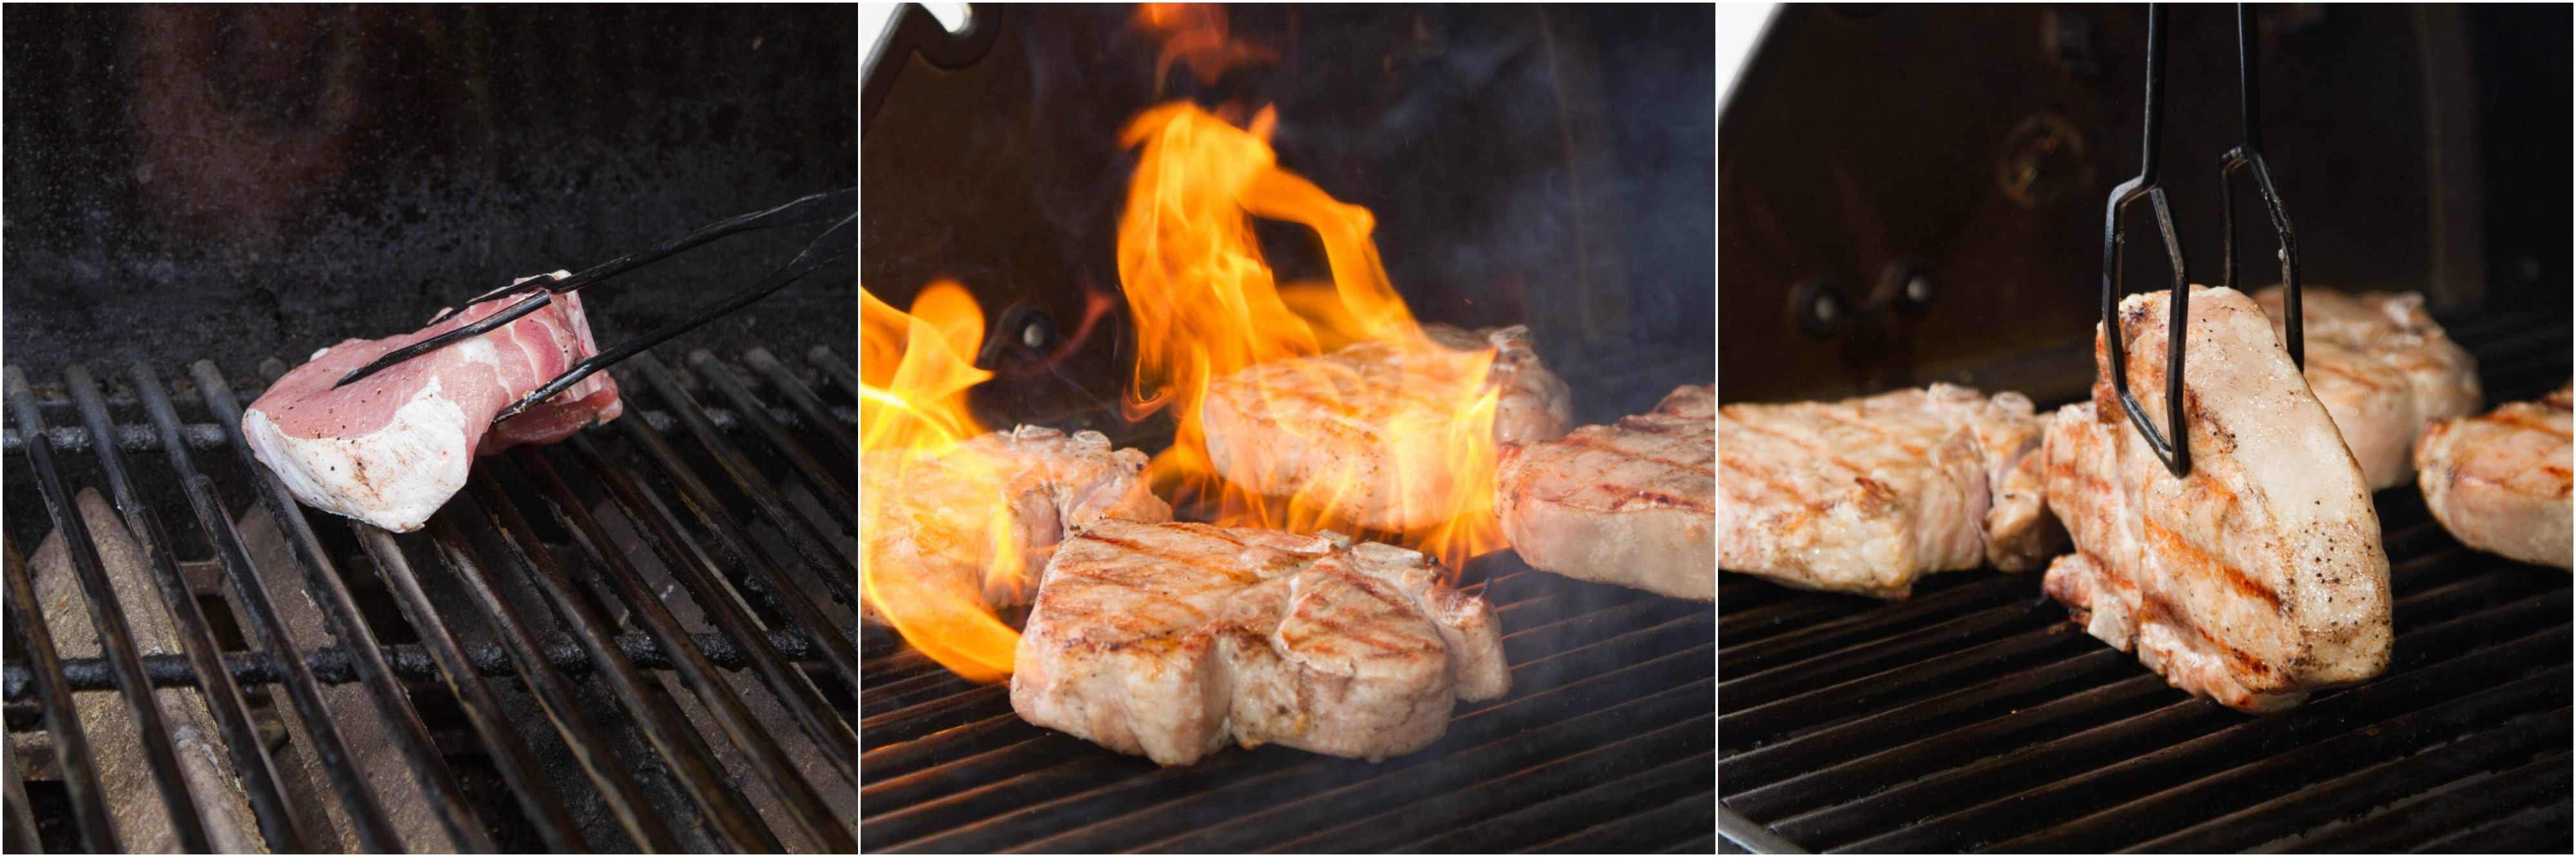 Searing pork chops over direct, high heat on a grill